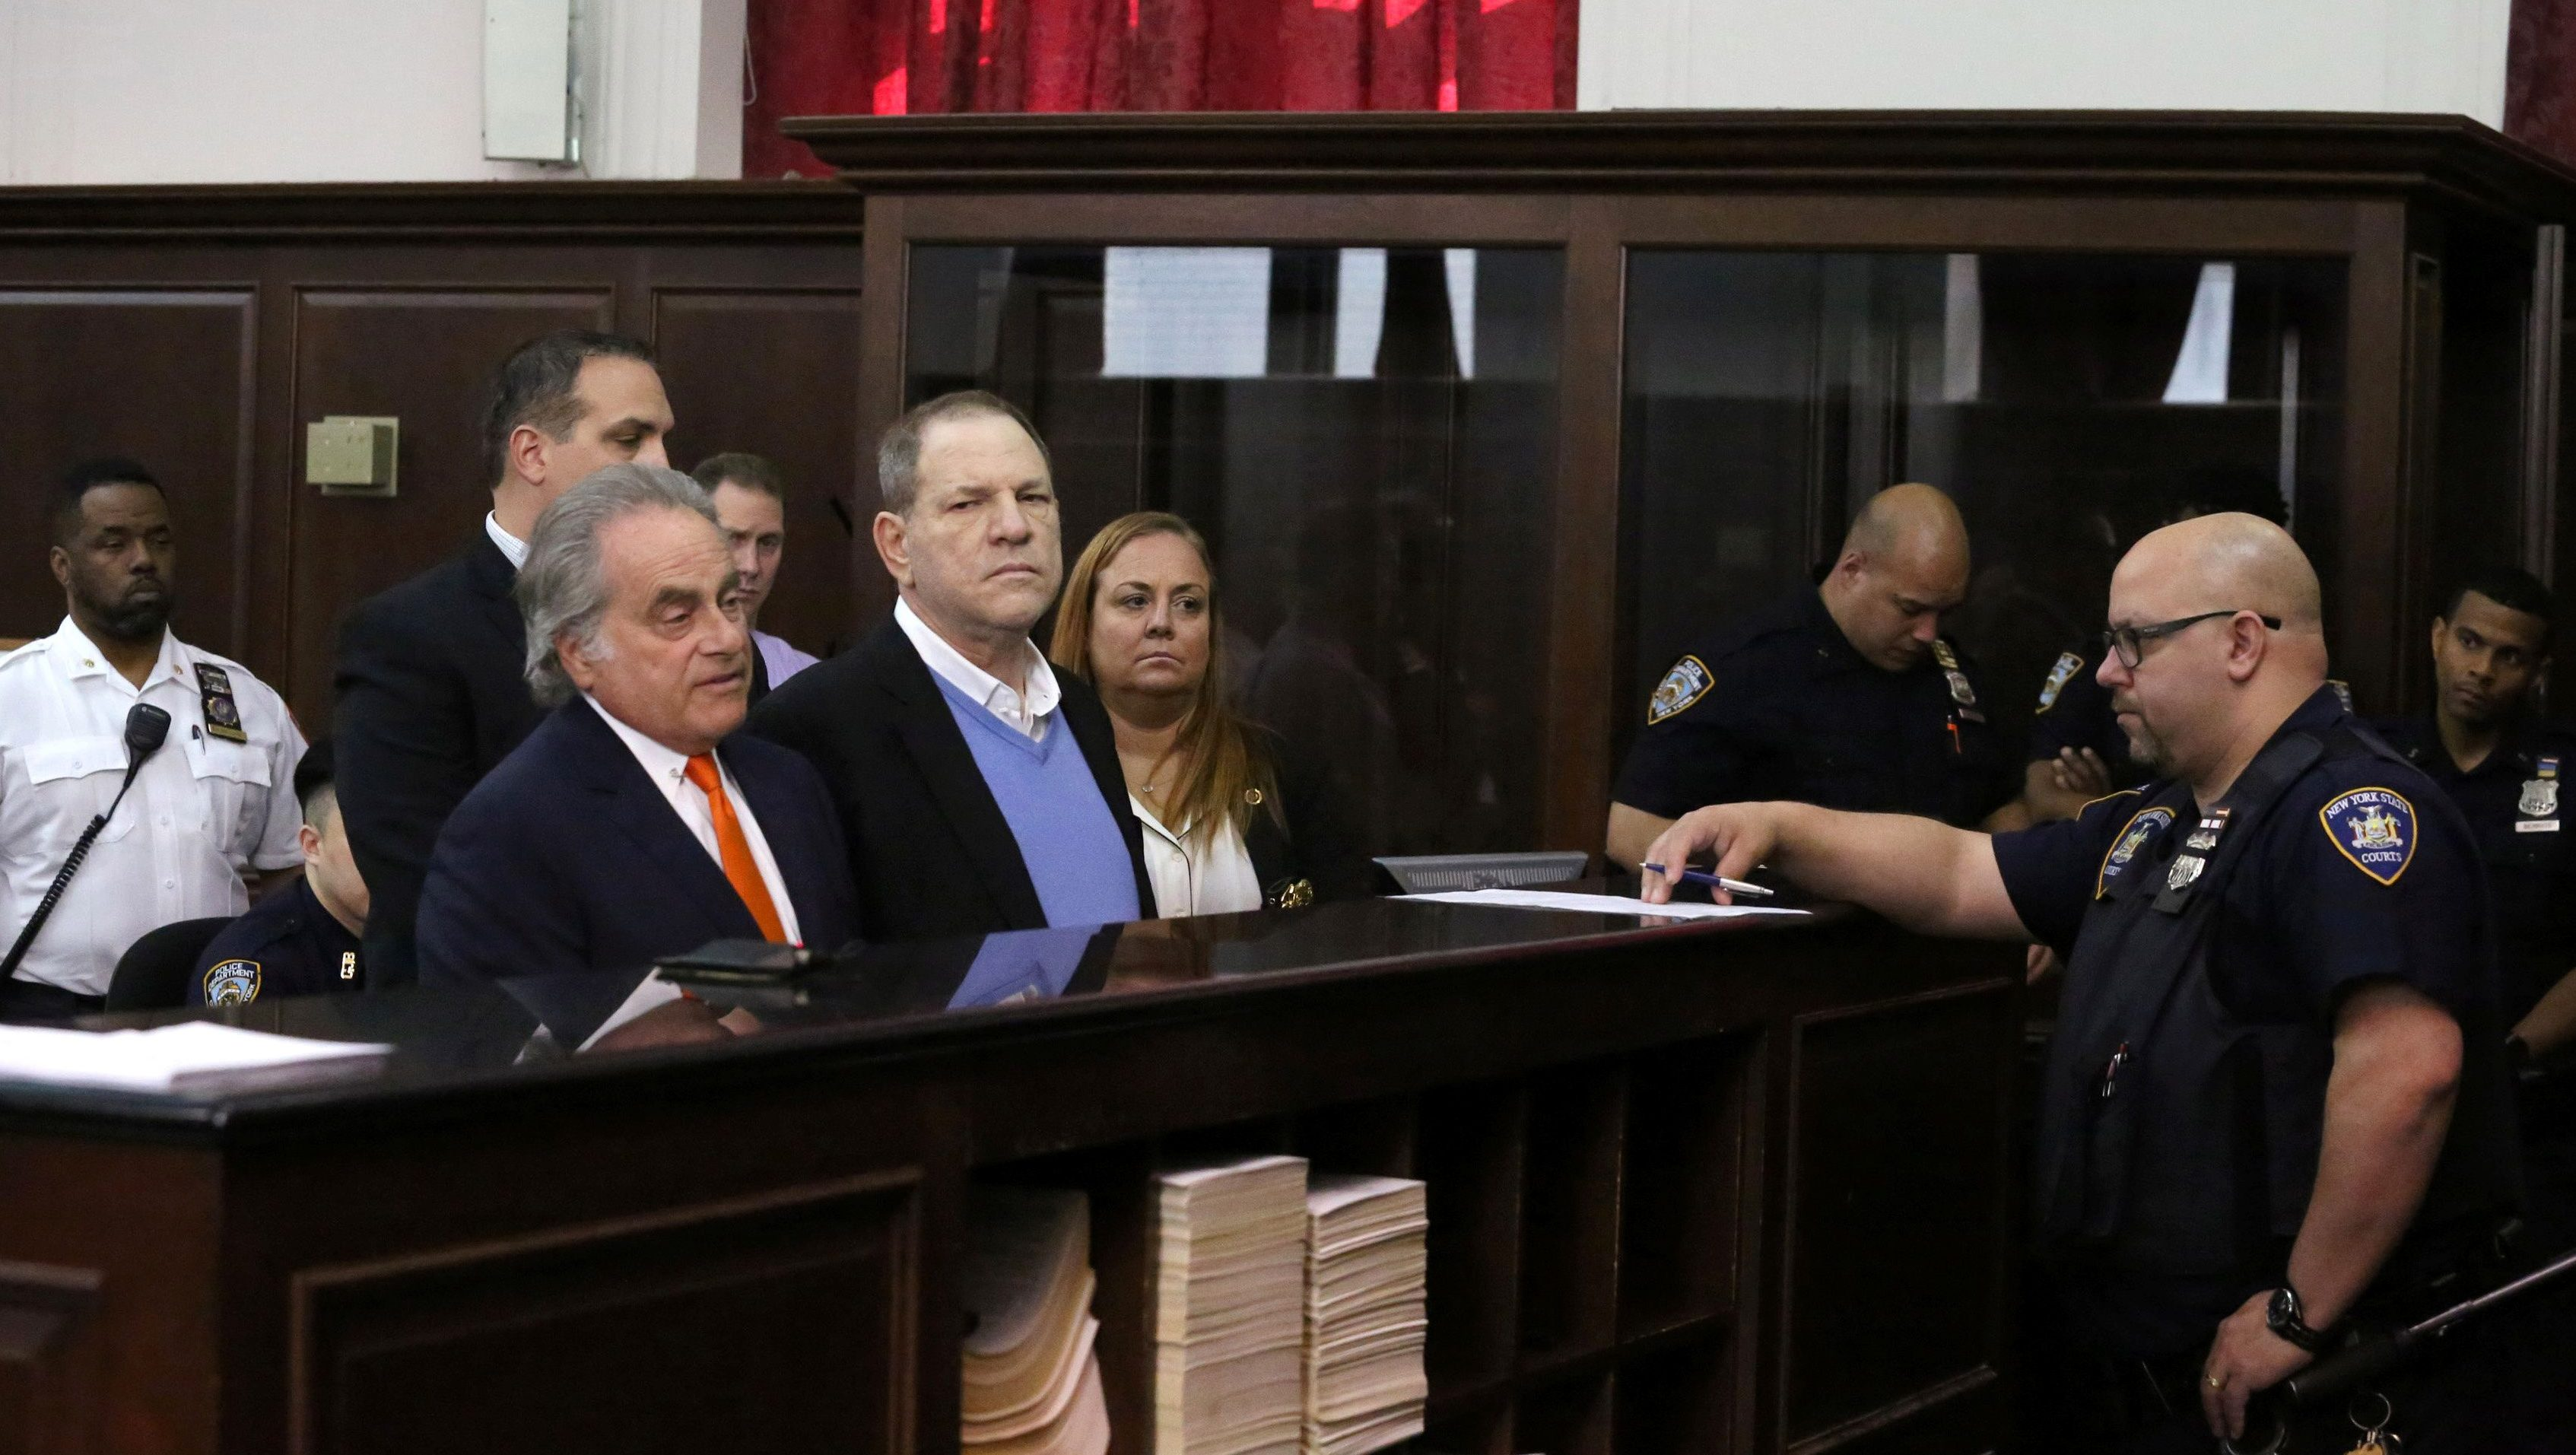 Film producer Harvey Weinstein stands with his lawyer Benjamin Brafman inside Manhattan Criminal Court during his arraignment in Manhattan in New York, U.S., May 25, 2018. Jefferson Siegel /Pool via REUTERS - RC16841D0670